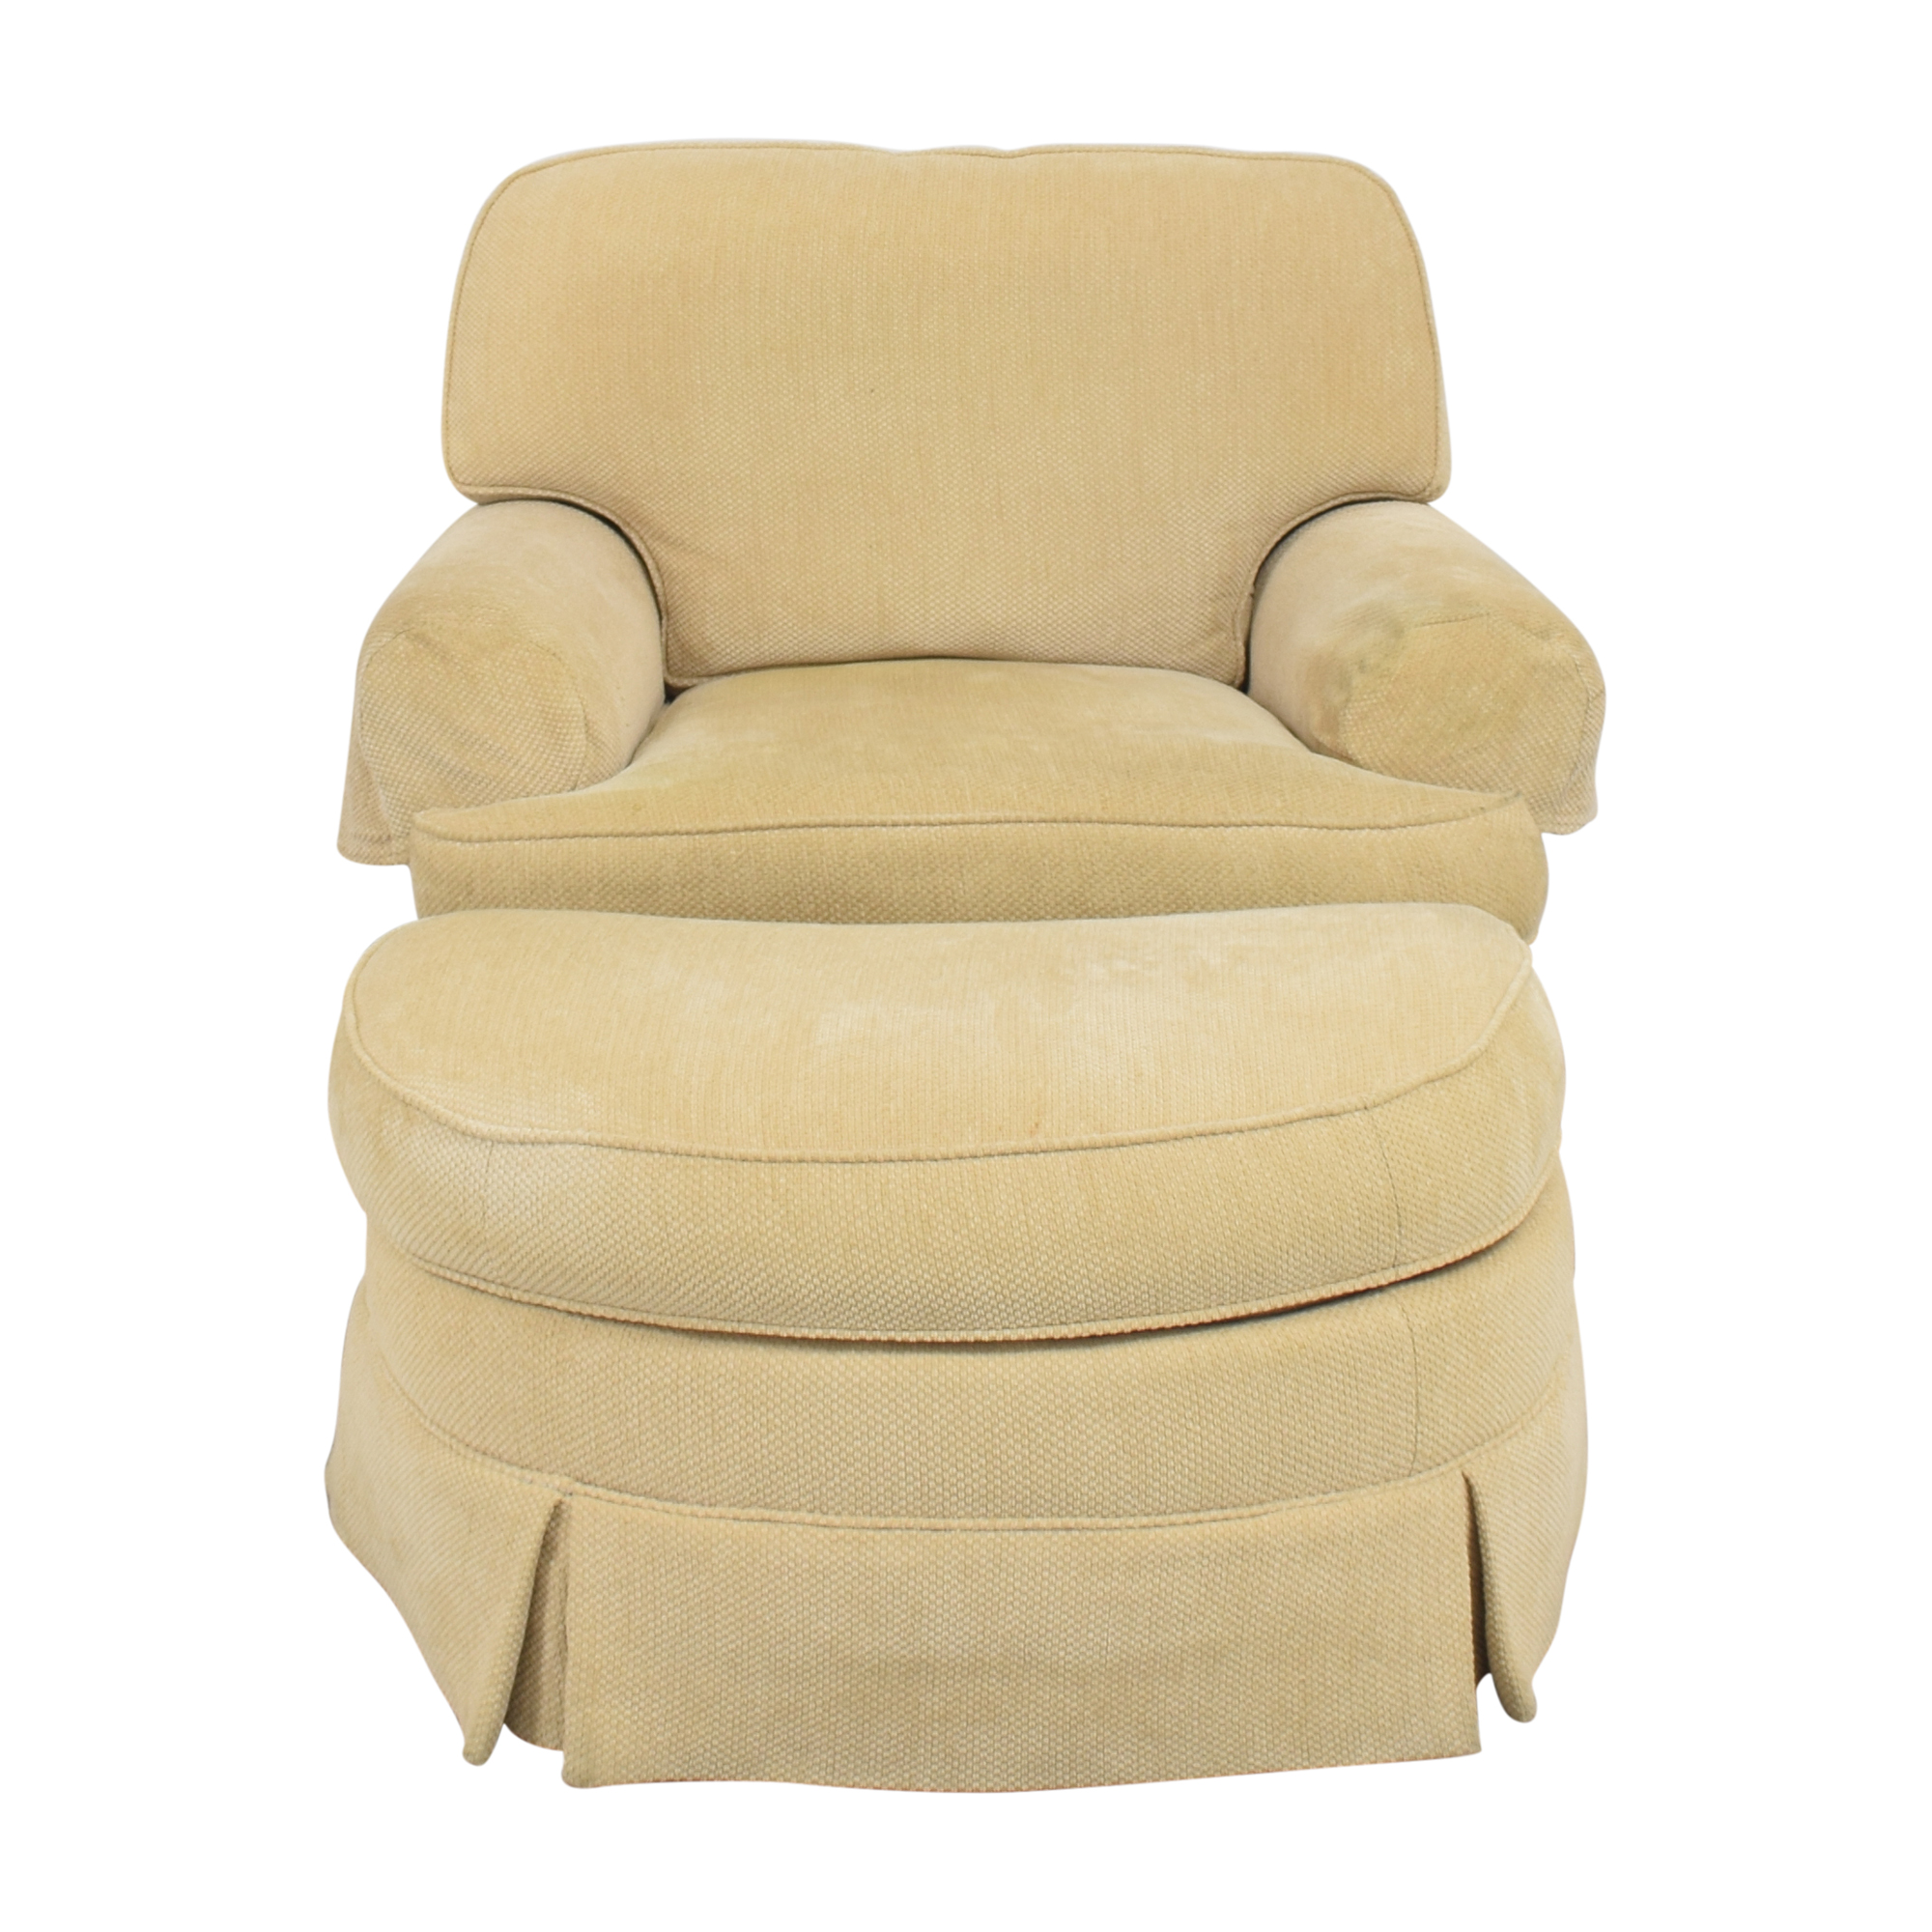 Ralph Lauren Home Ralph Lauren Home Chair with Ottoman yellow